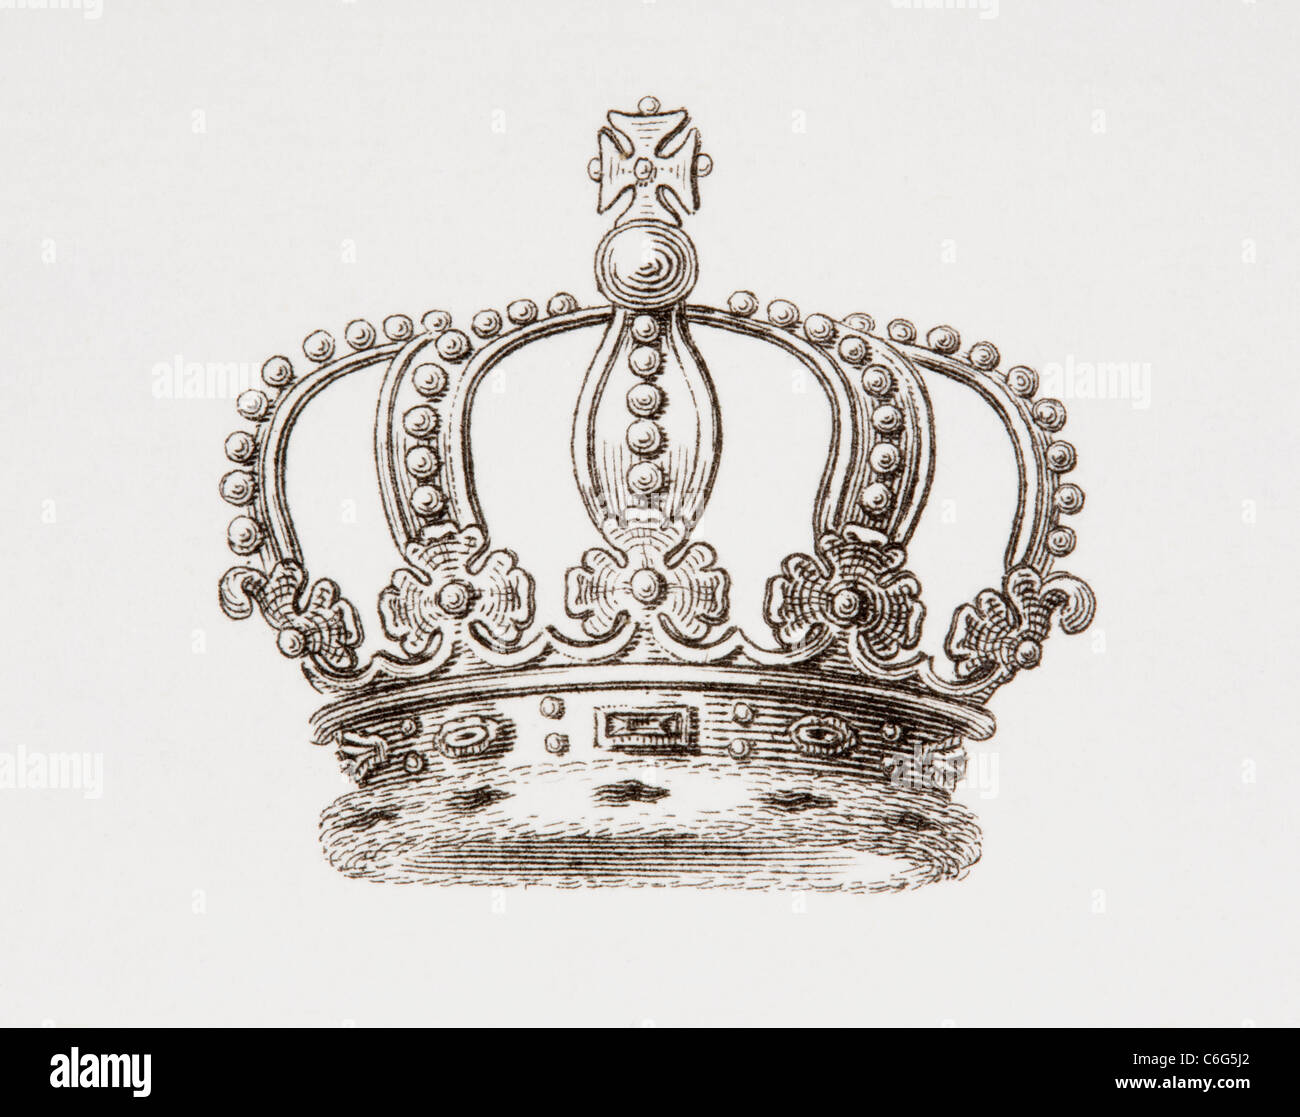 Crown of the Kingdom of Sweden. - Stock Image